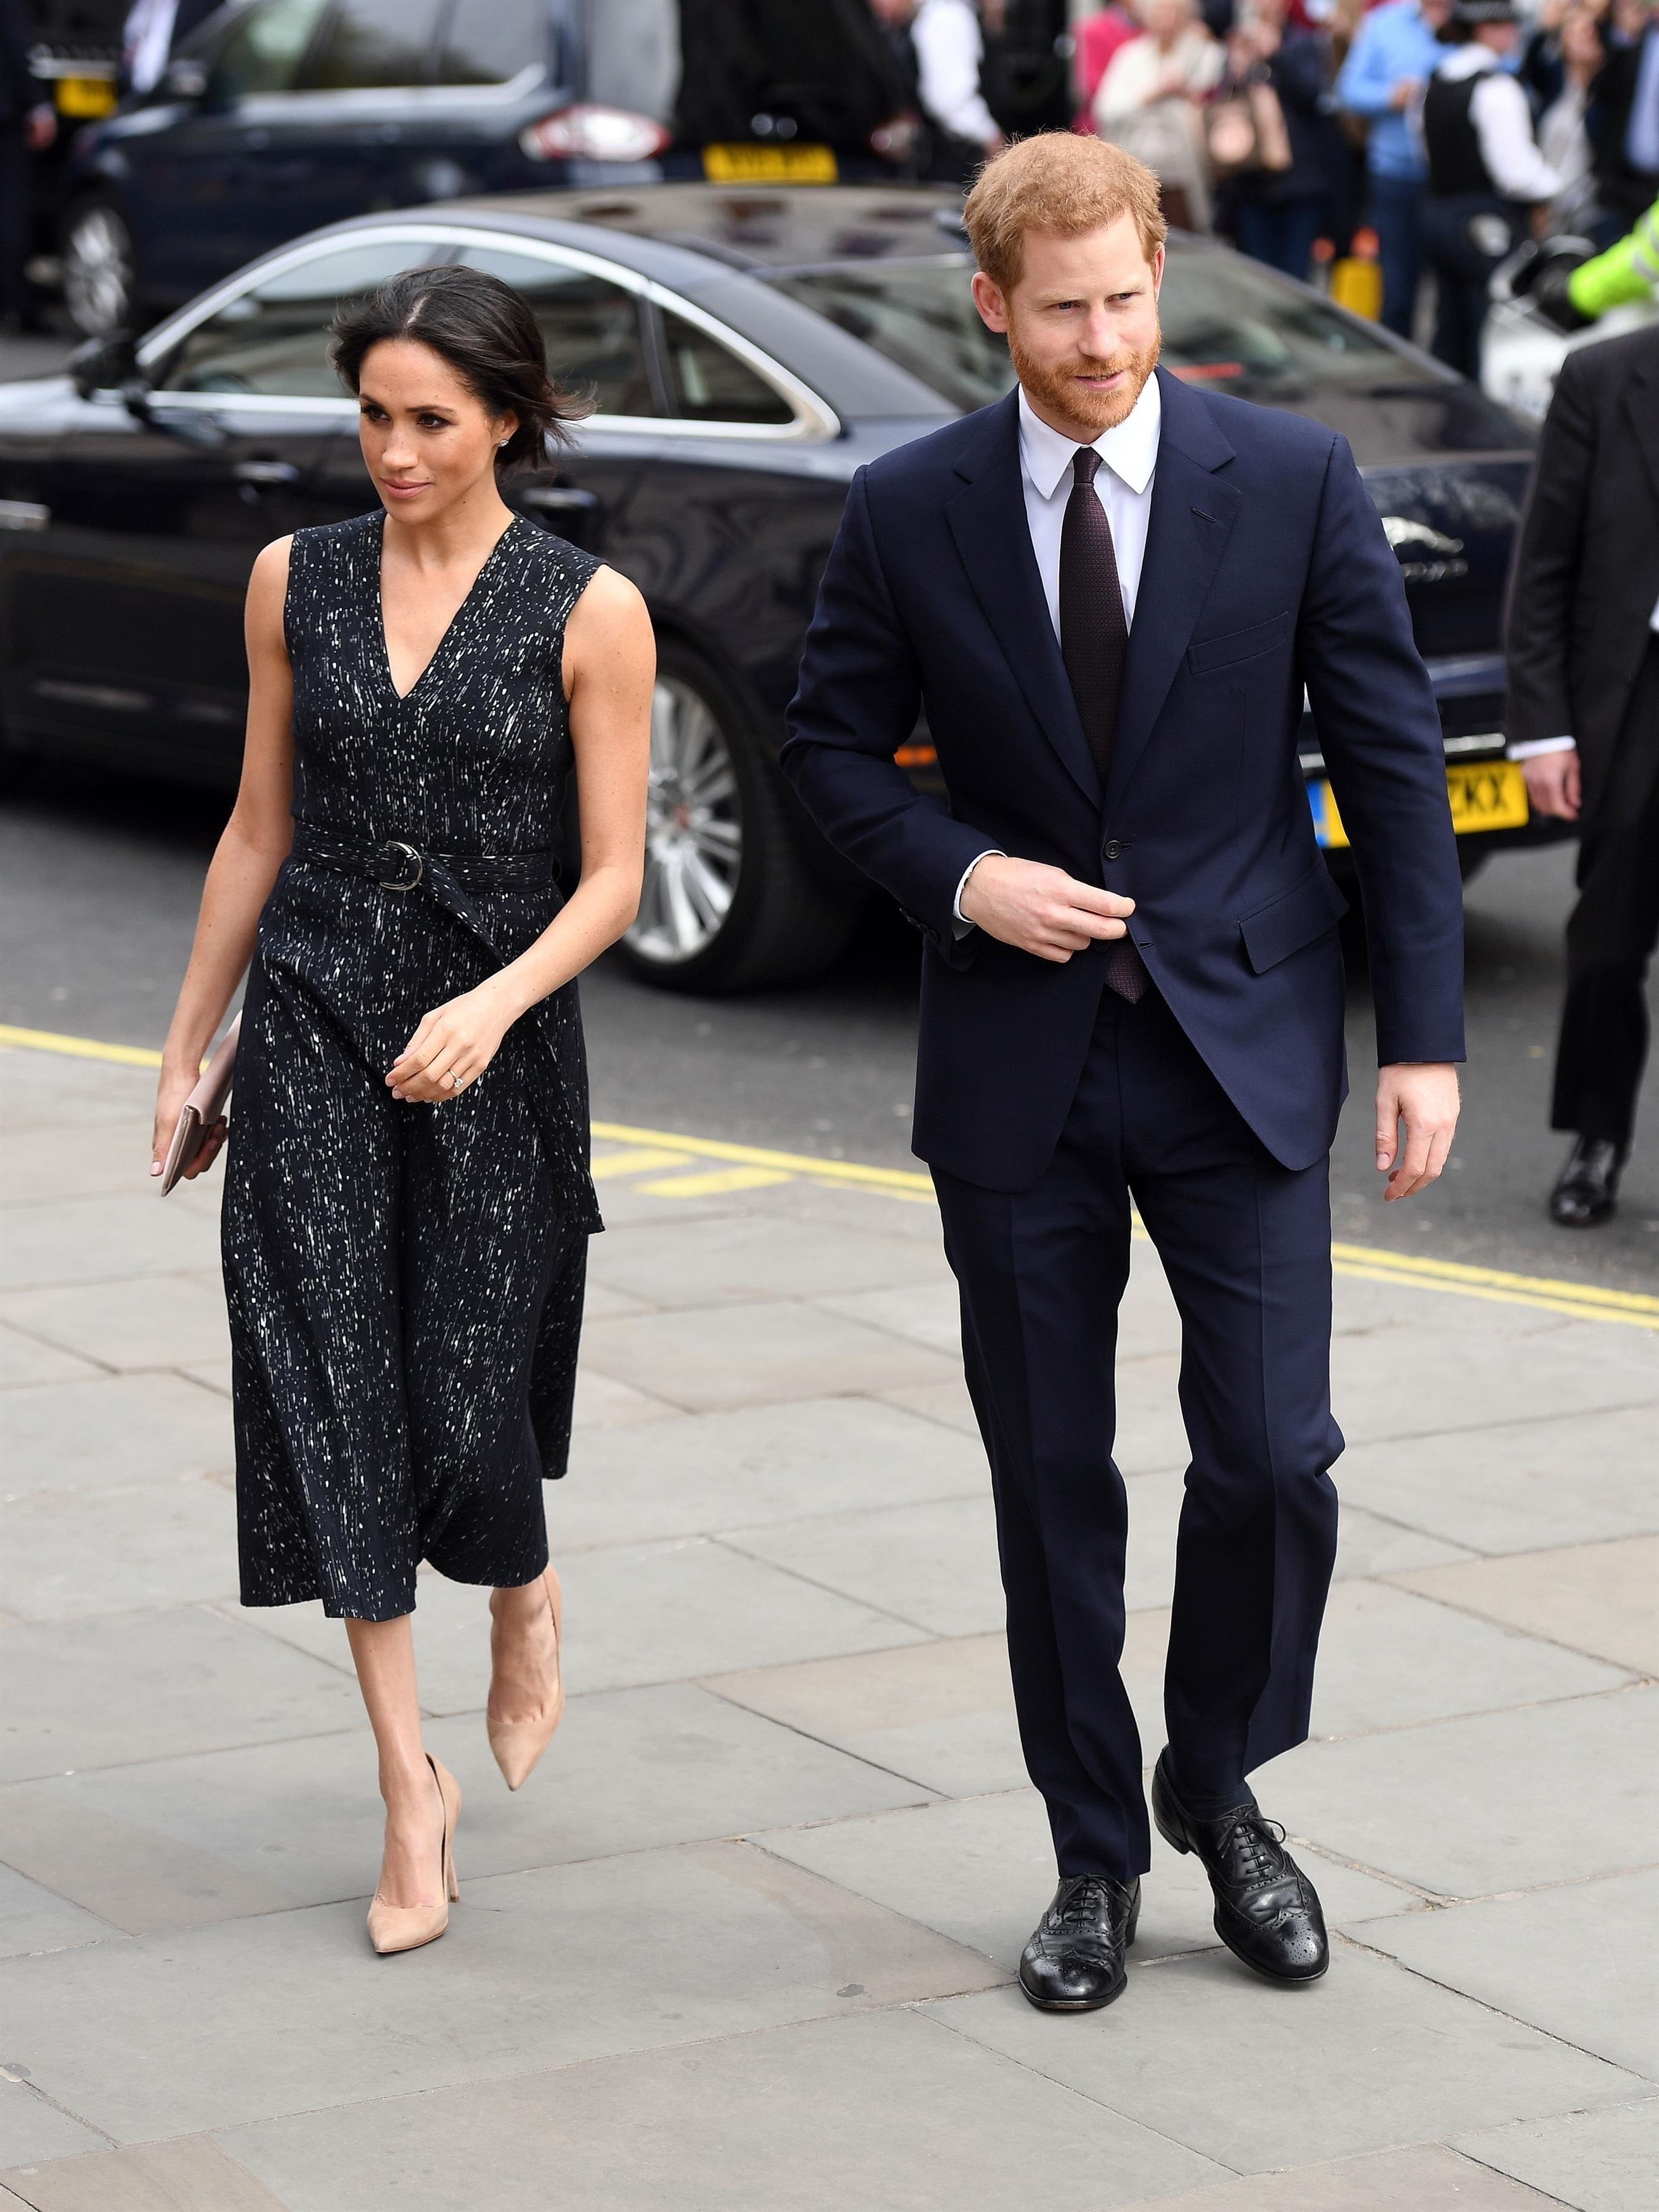 Watch Meghan Markle Is Now Wearing a Prince Harry Ring video